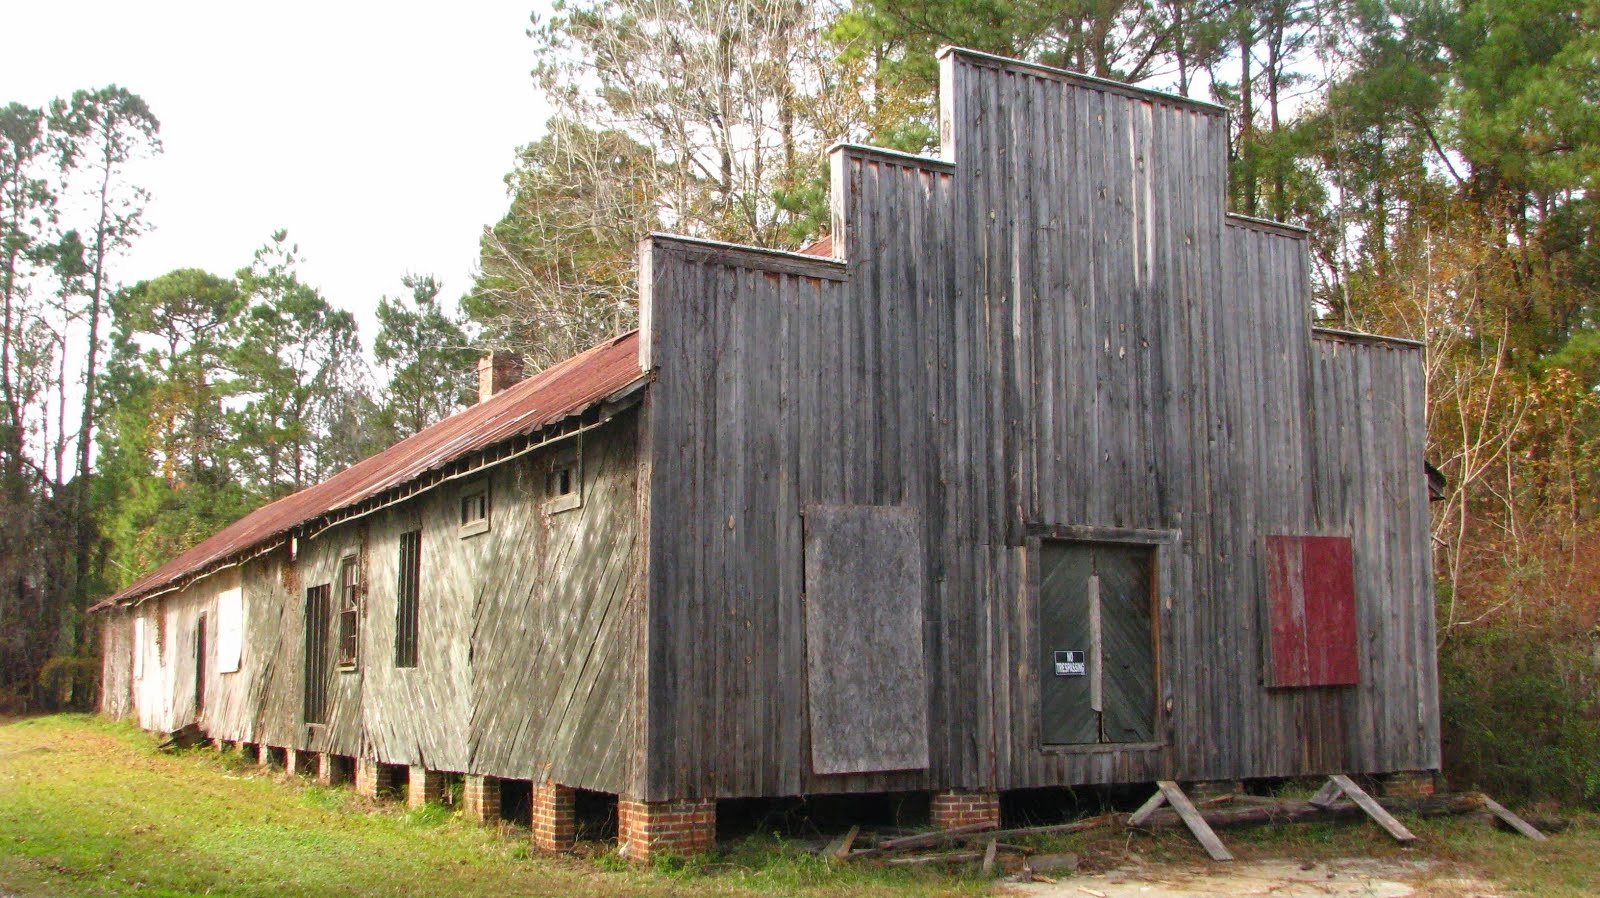 Old Elliotts Landing Building, South Carolina